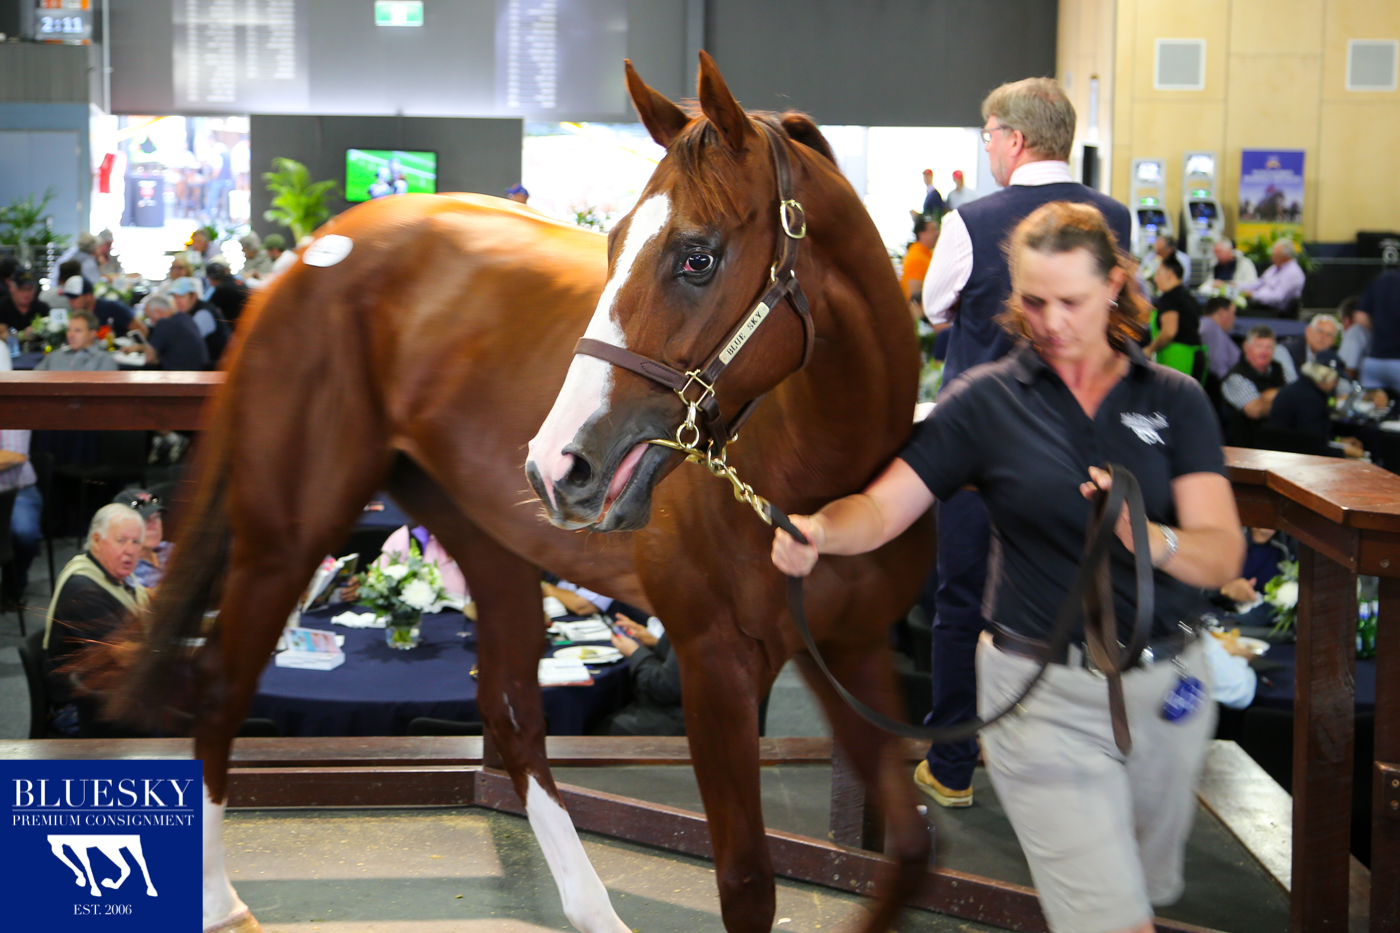 Blue Sky Premium Consignment Top Offering SEXY EYES sells for $650,000 to Suman Hedge Bloodstock